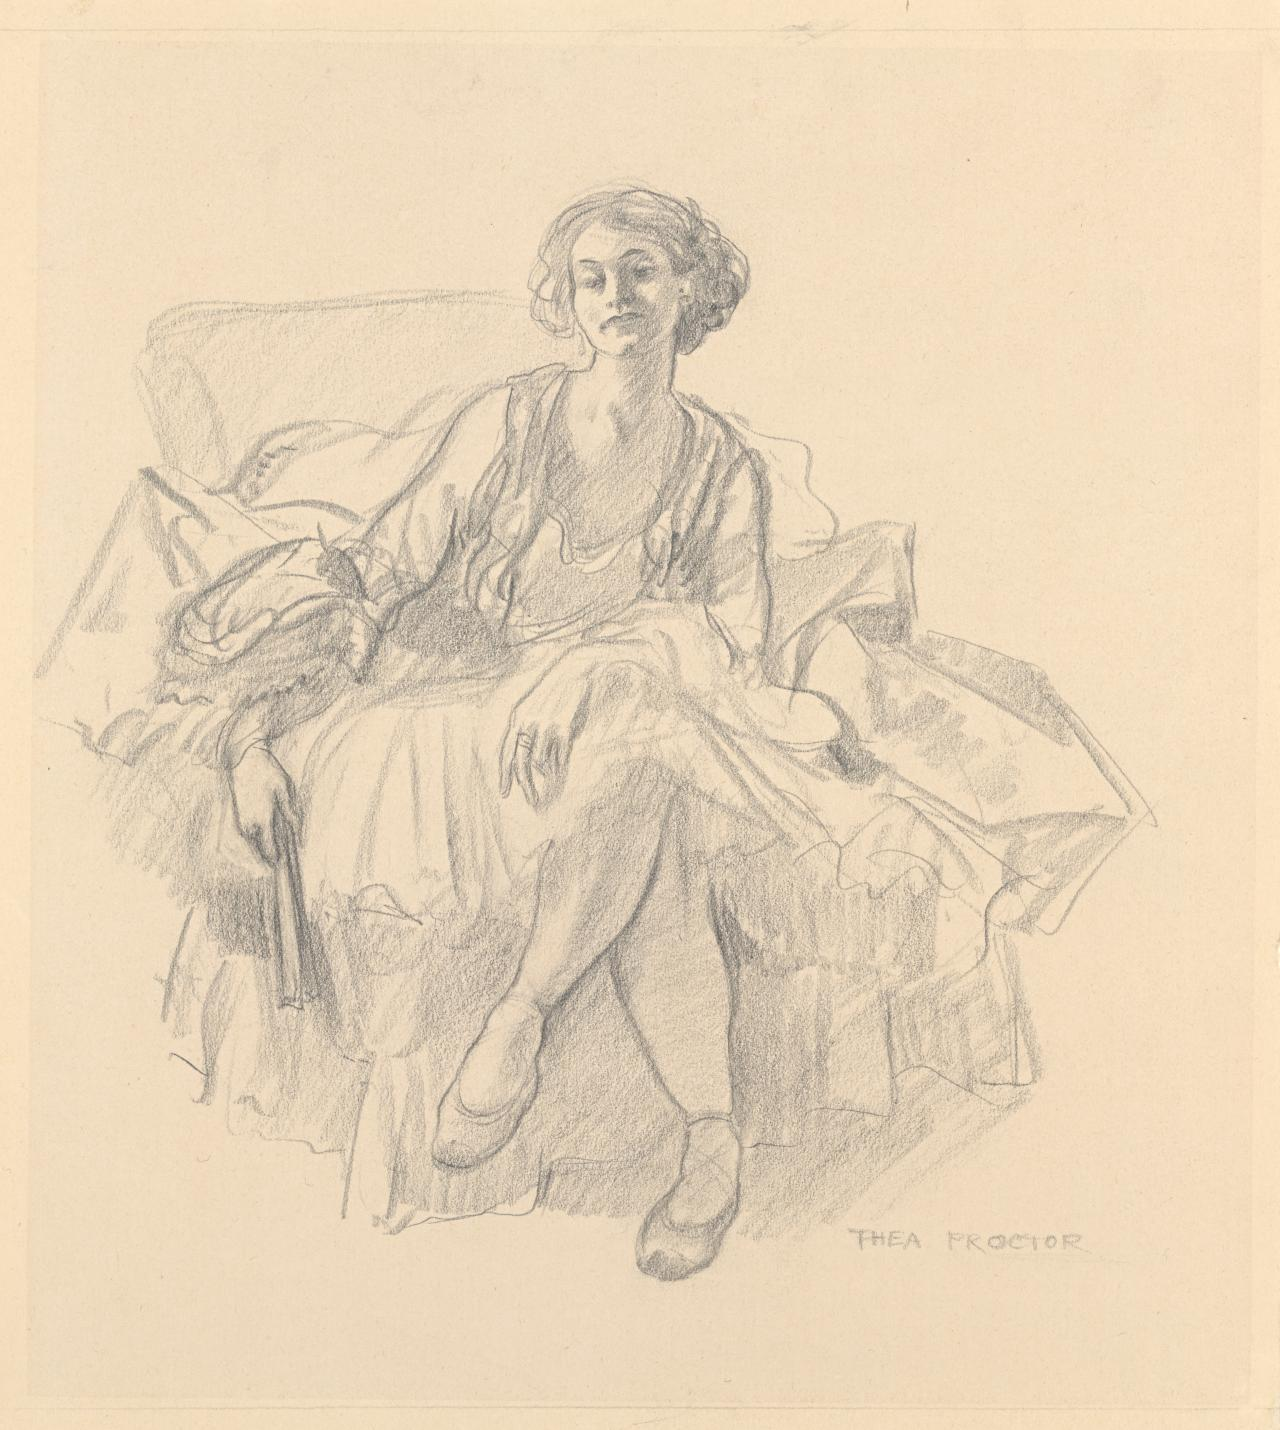 Thea Proctor in London 1910–11: her early involvement with